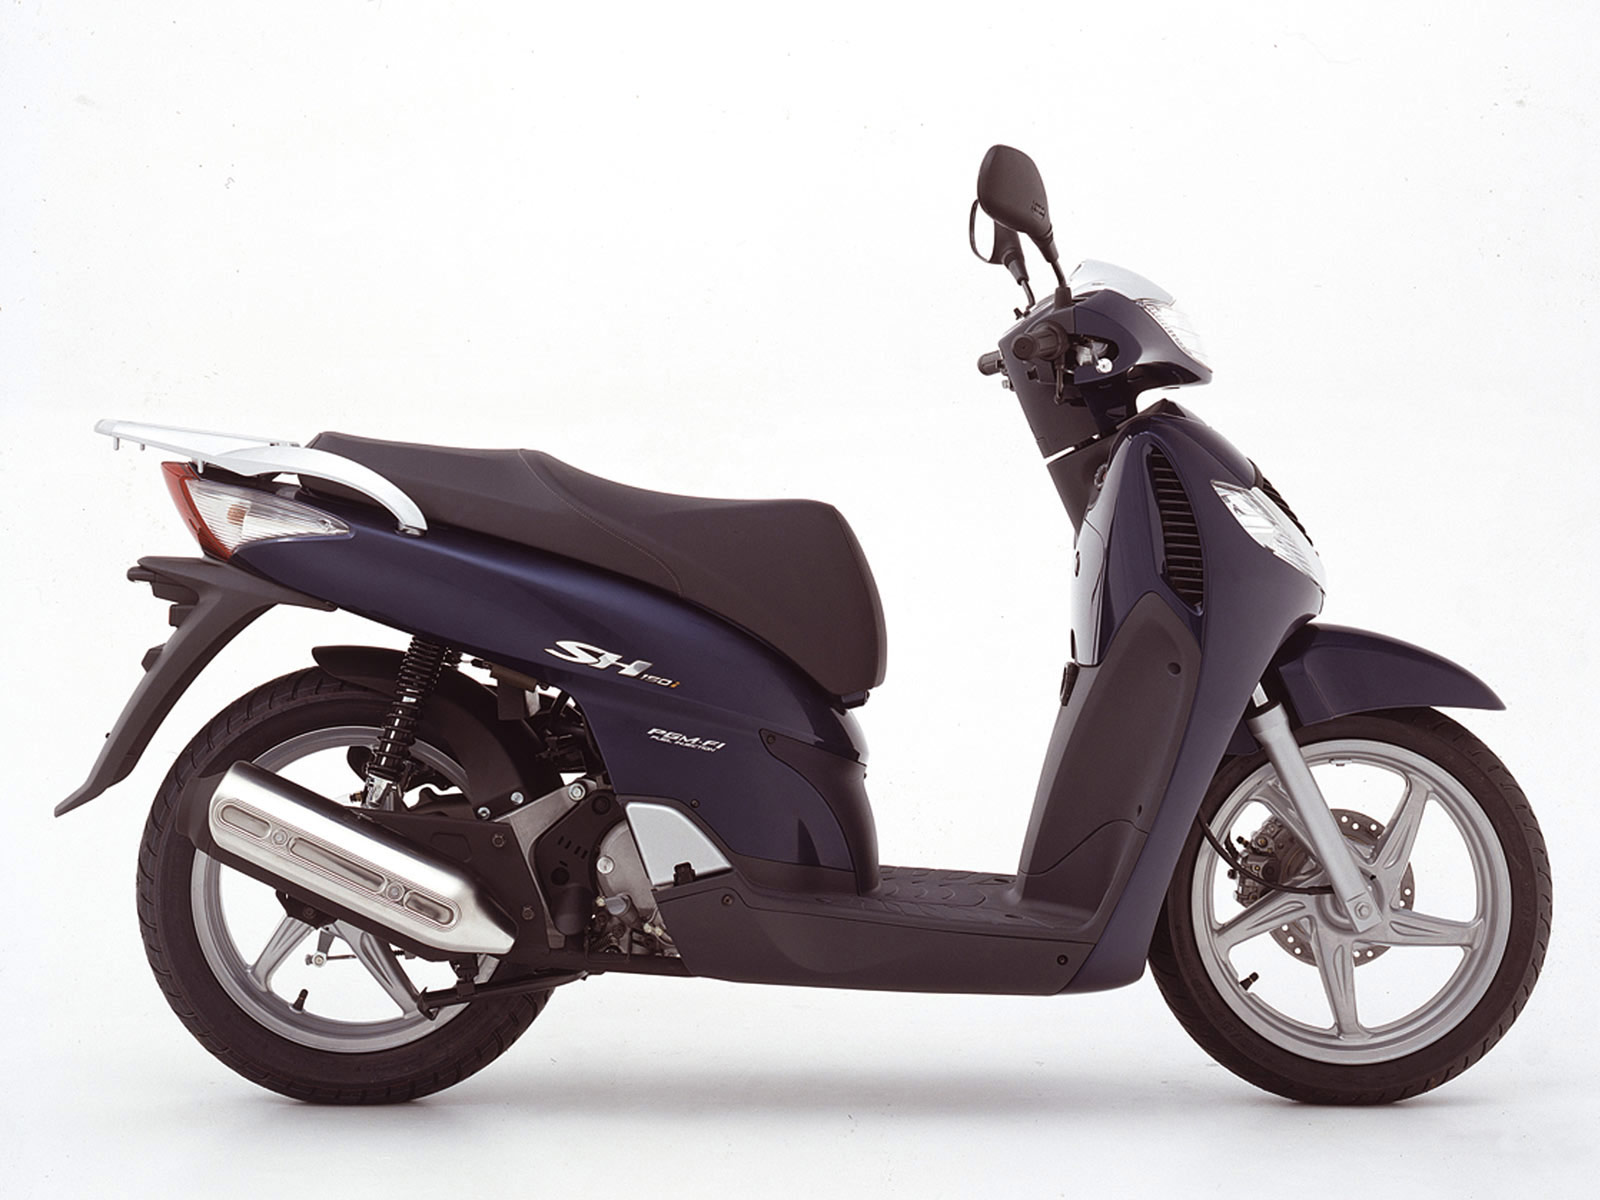 Lost Honda Key >> 2005 HONDA SH150i accident lawyers, Scooter Pictures